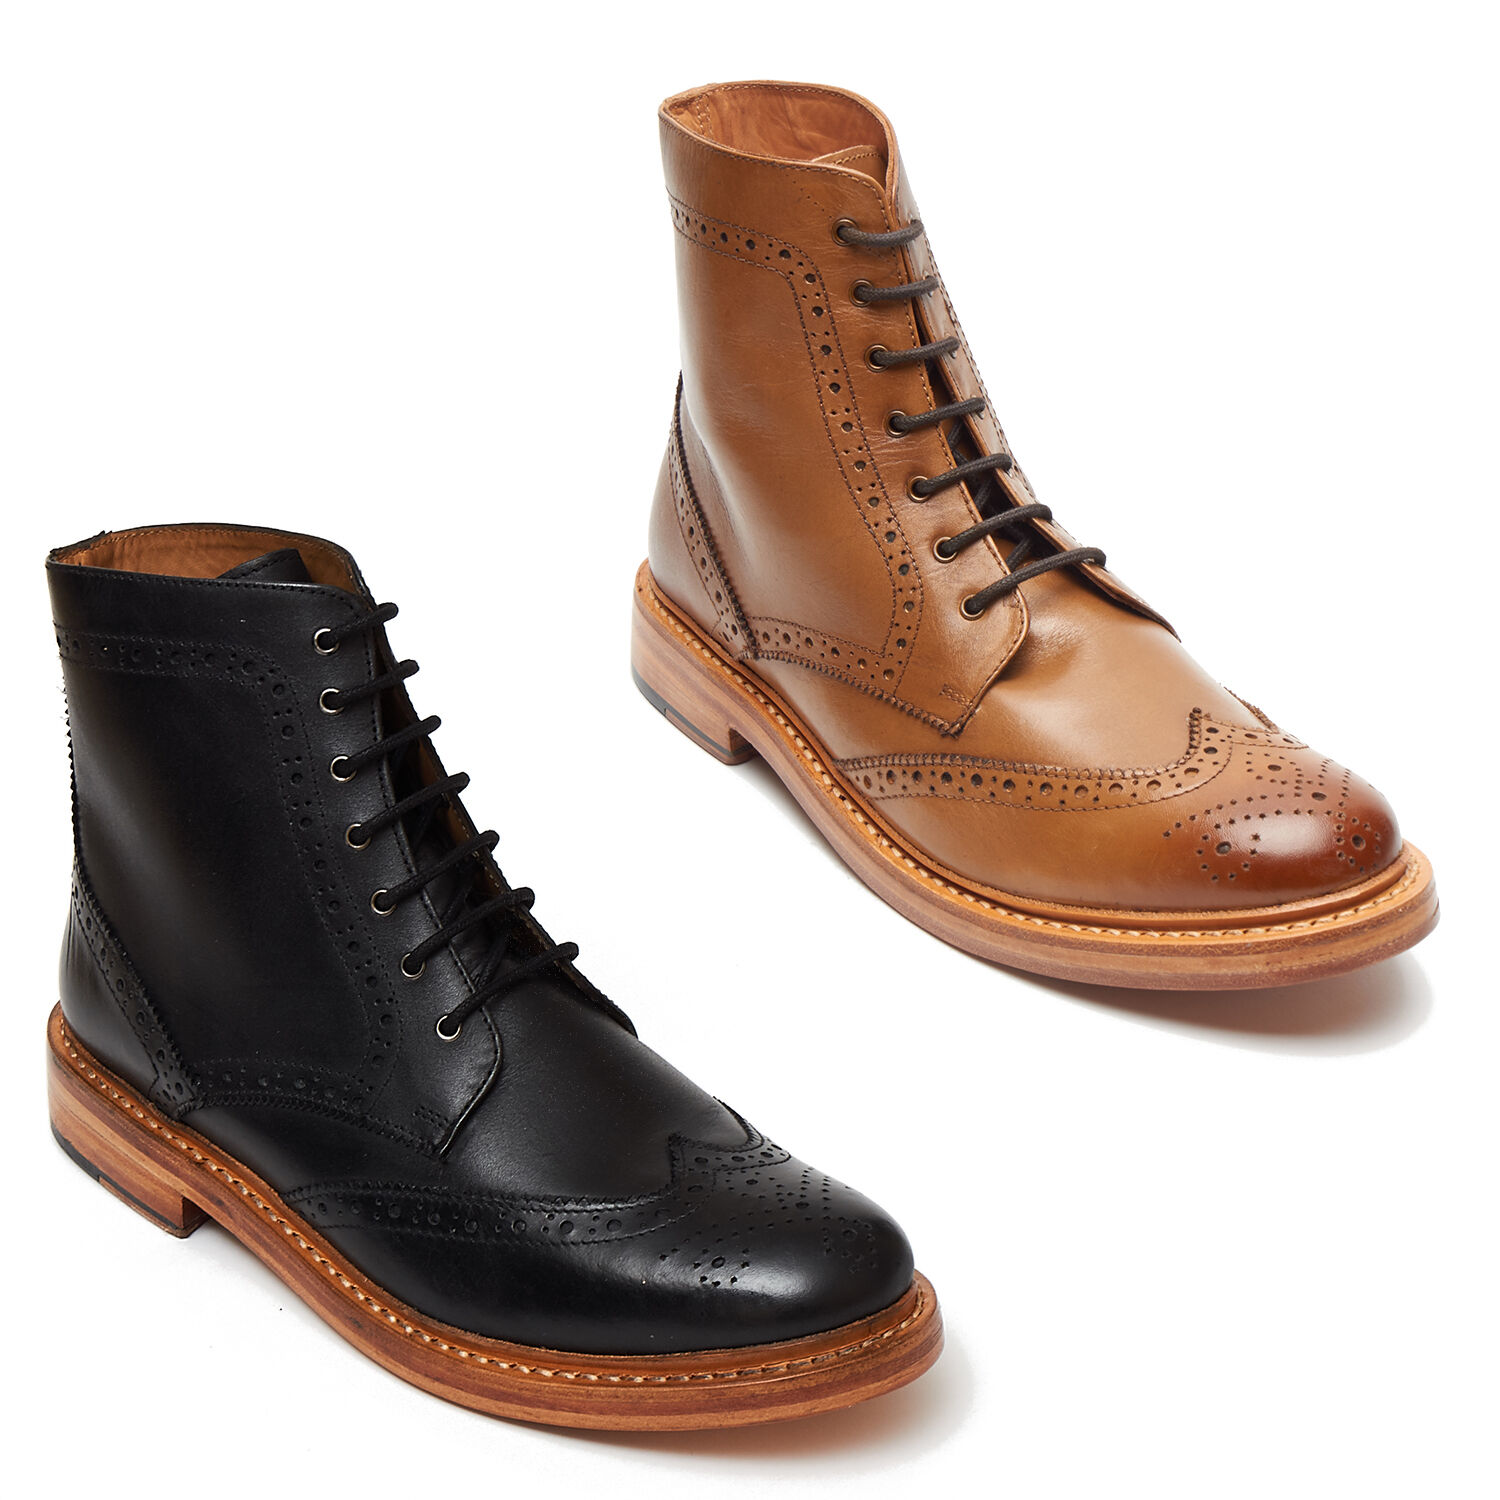 GOOD UP LACE BROGUE LEATHER YEAR MENS Stiefel ANKLE TAN